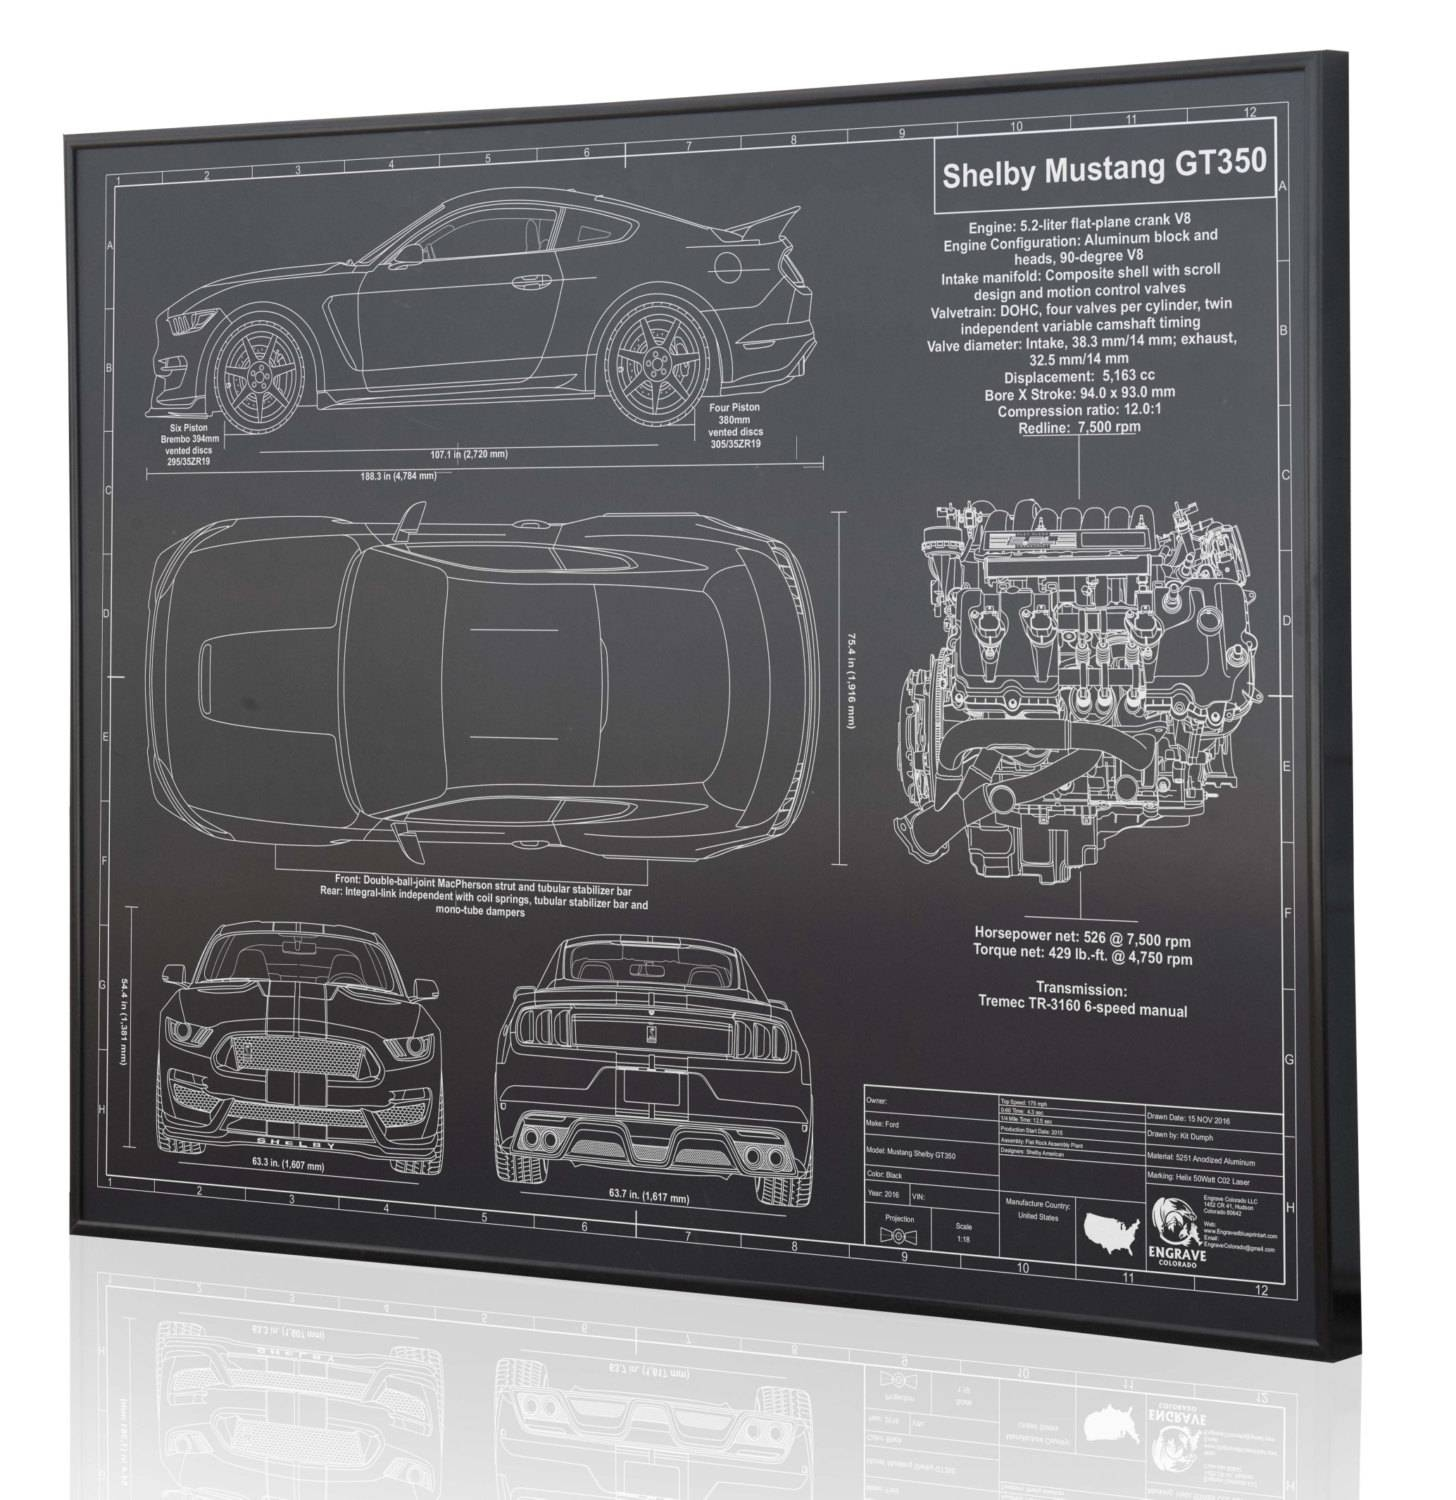 Shelby Mustang Gt350 2016 Laser Engraved Wall Art Poster (View 20 of 20)